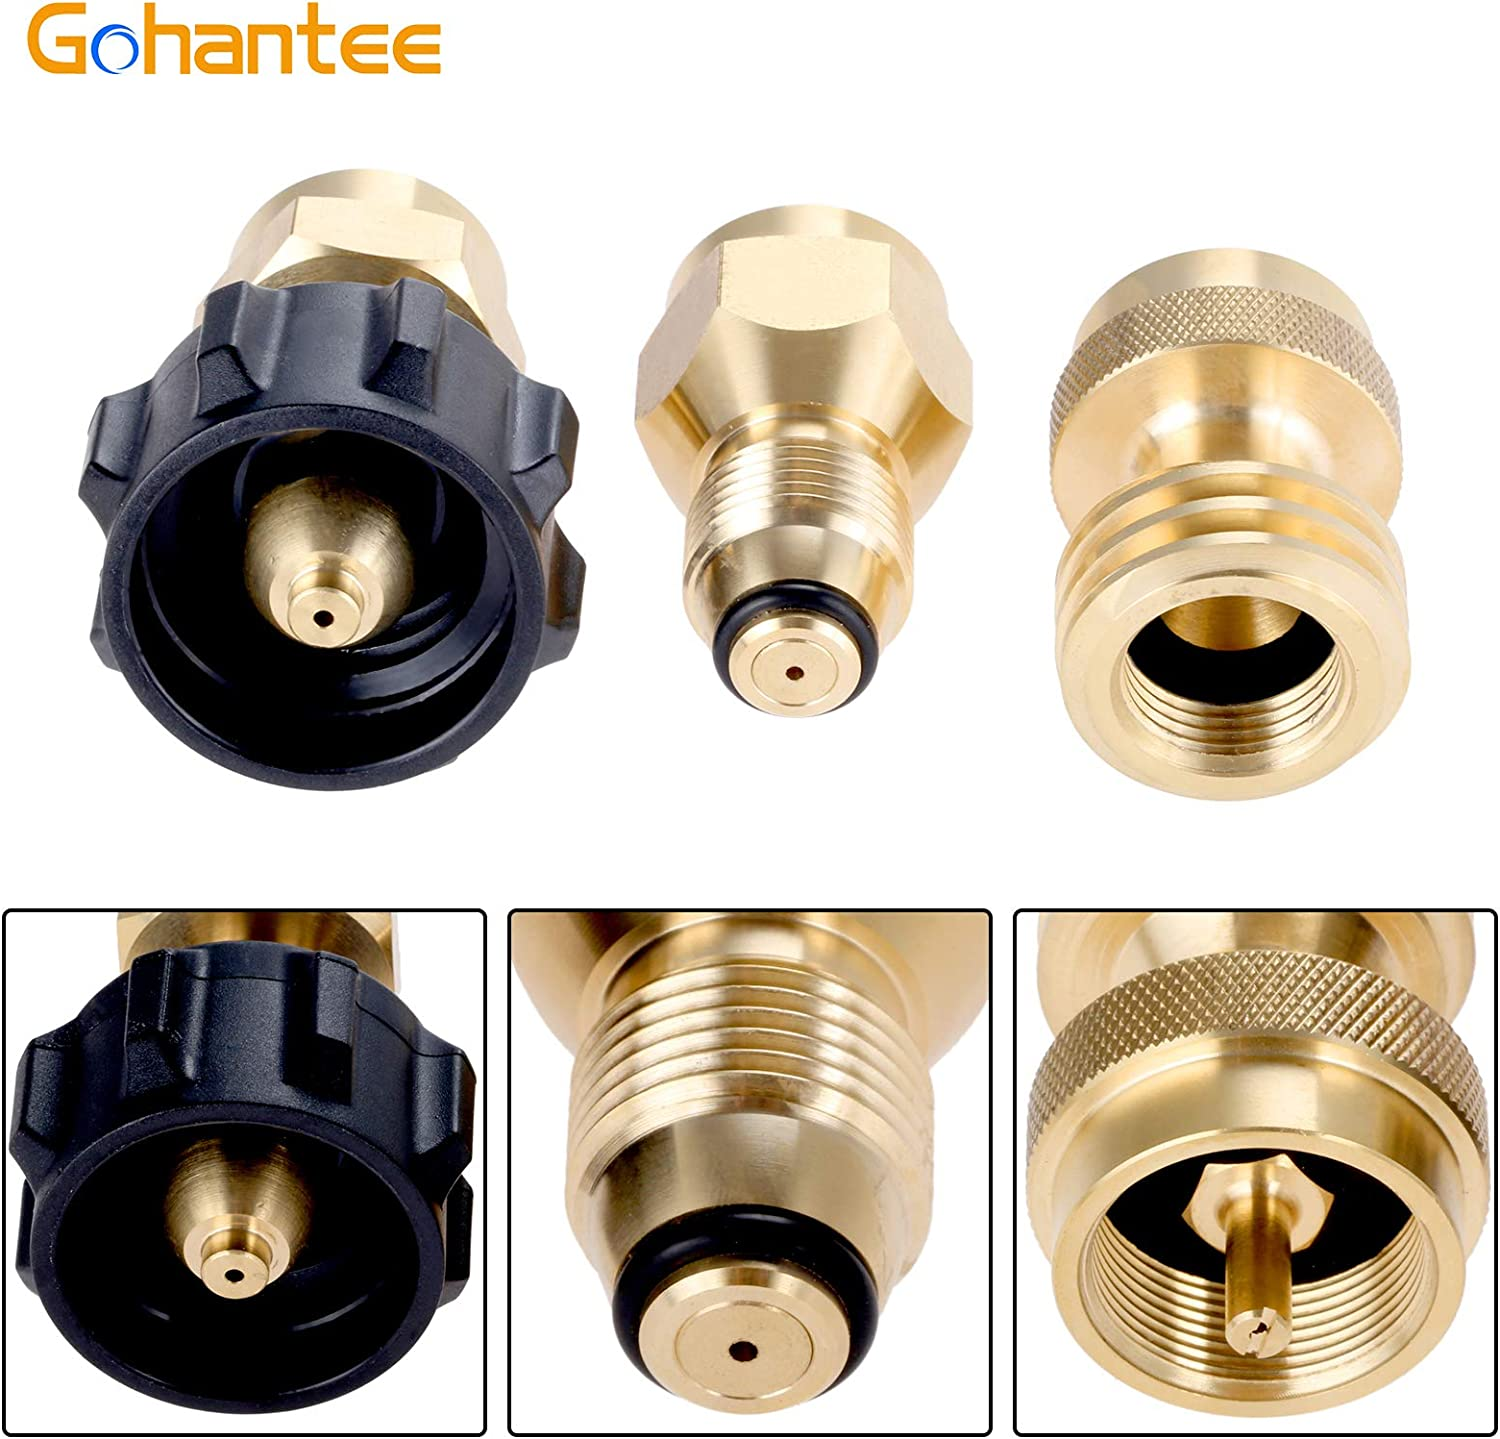 4x Propane Refill Adapters Gas Cylinder Tank Sealed Caps for Outdoor Camping